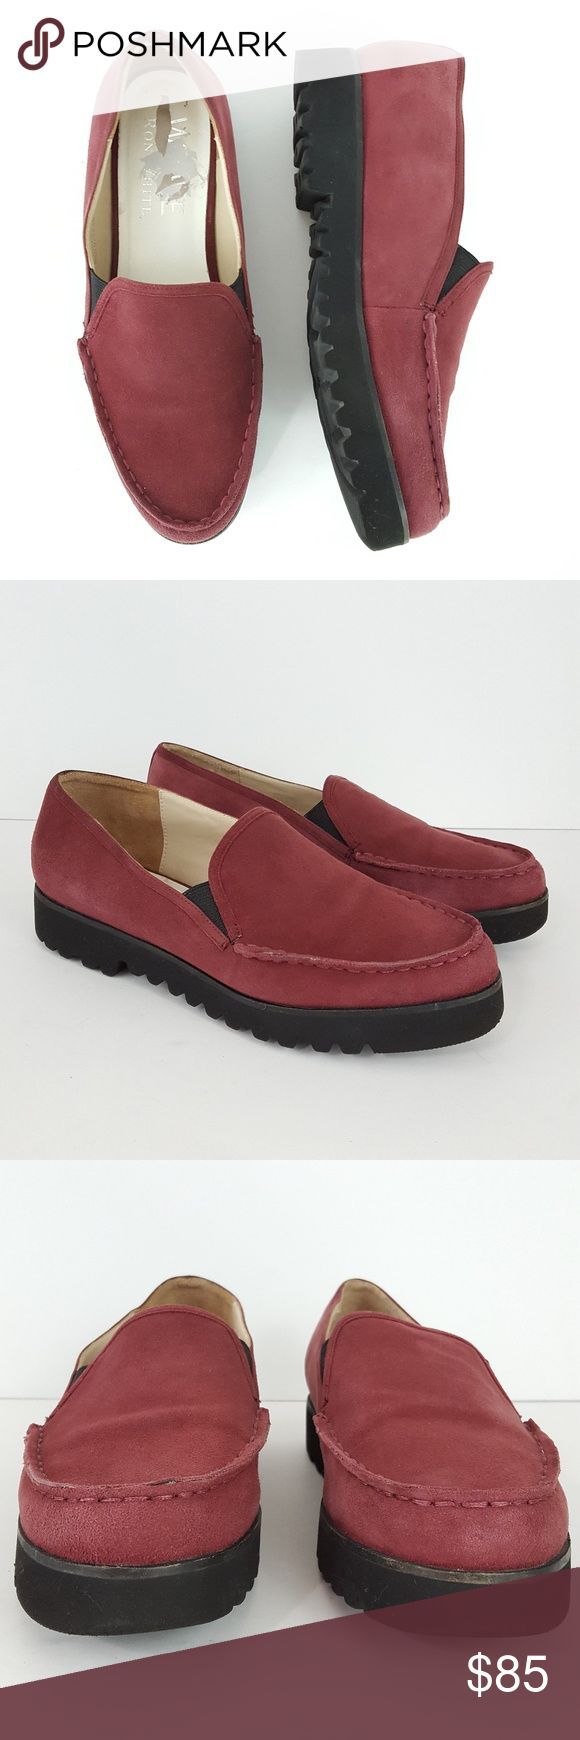 "{Ron White} Simone Burgundy Suede Loafers Creepers Ron White Loafers Size 8 ""Simone"" Burgundy Suede Slip-On Creepers Dark Red Shoes  Excellent pre-owned condition; has minimal wear. Please see pics.  Minor damage to right footbed from removing price sticker  Outsole at widest = 3.5"" Heel height = 1.25"" Platform height = 3/4""  W-SHOE-4207 Ron White Shoes Flats & Loafers"